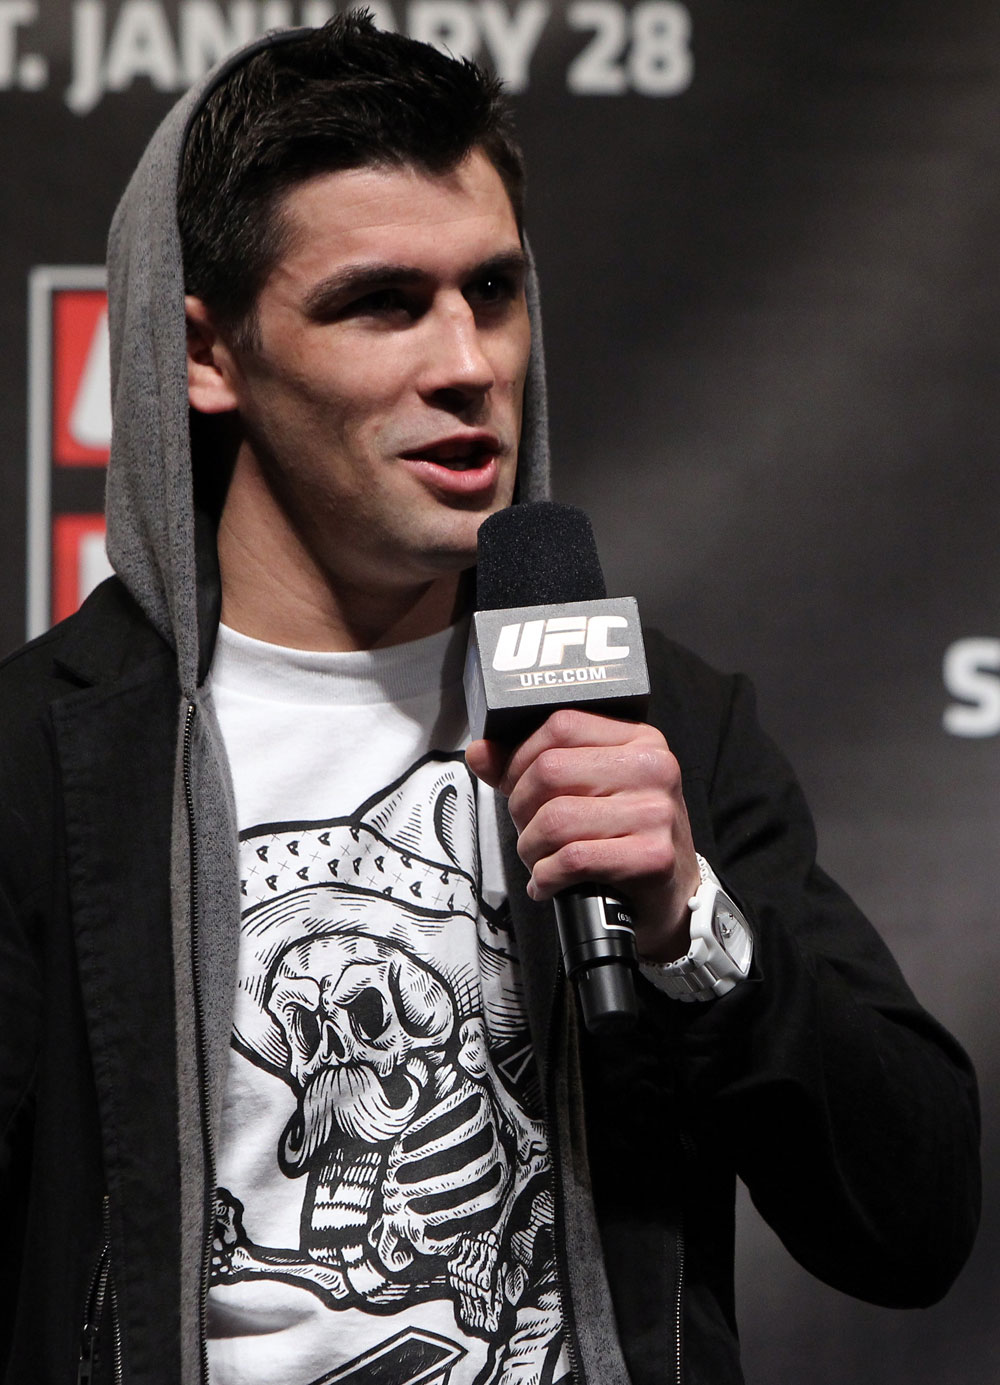 UFC bantamweight champion Dominick Cruz